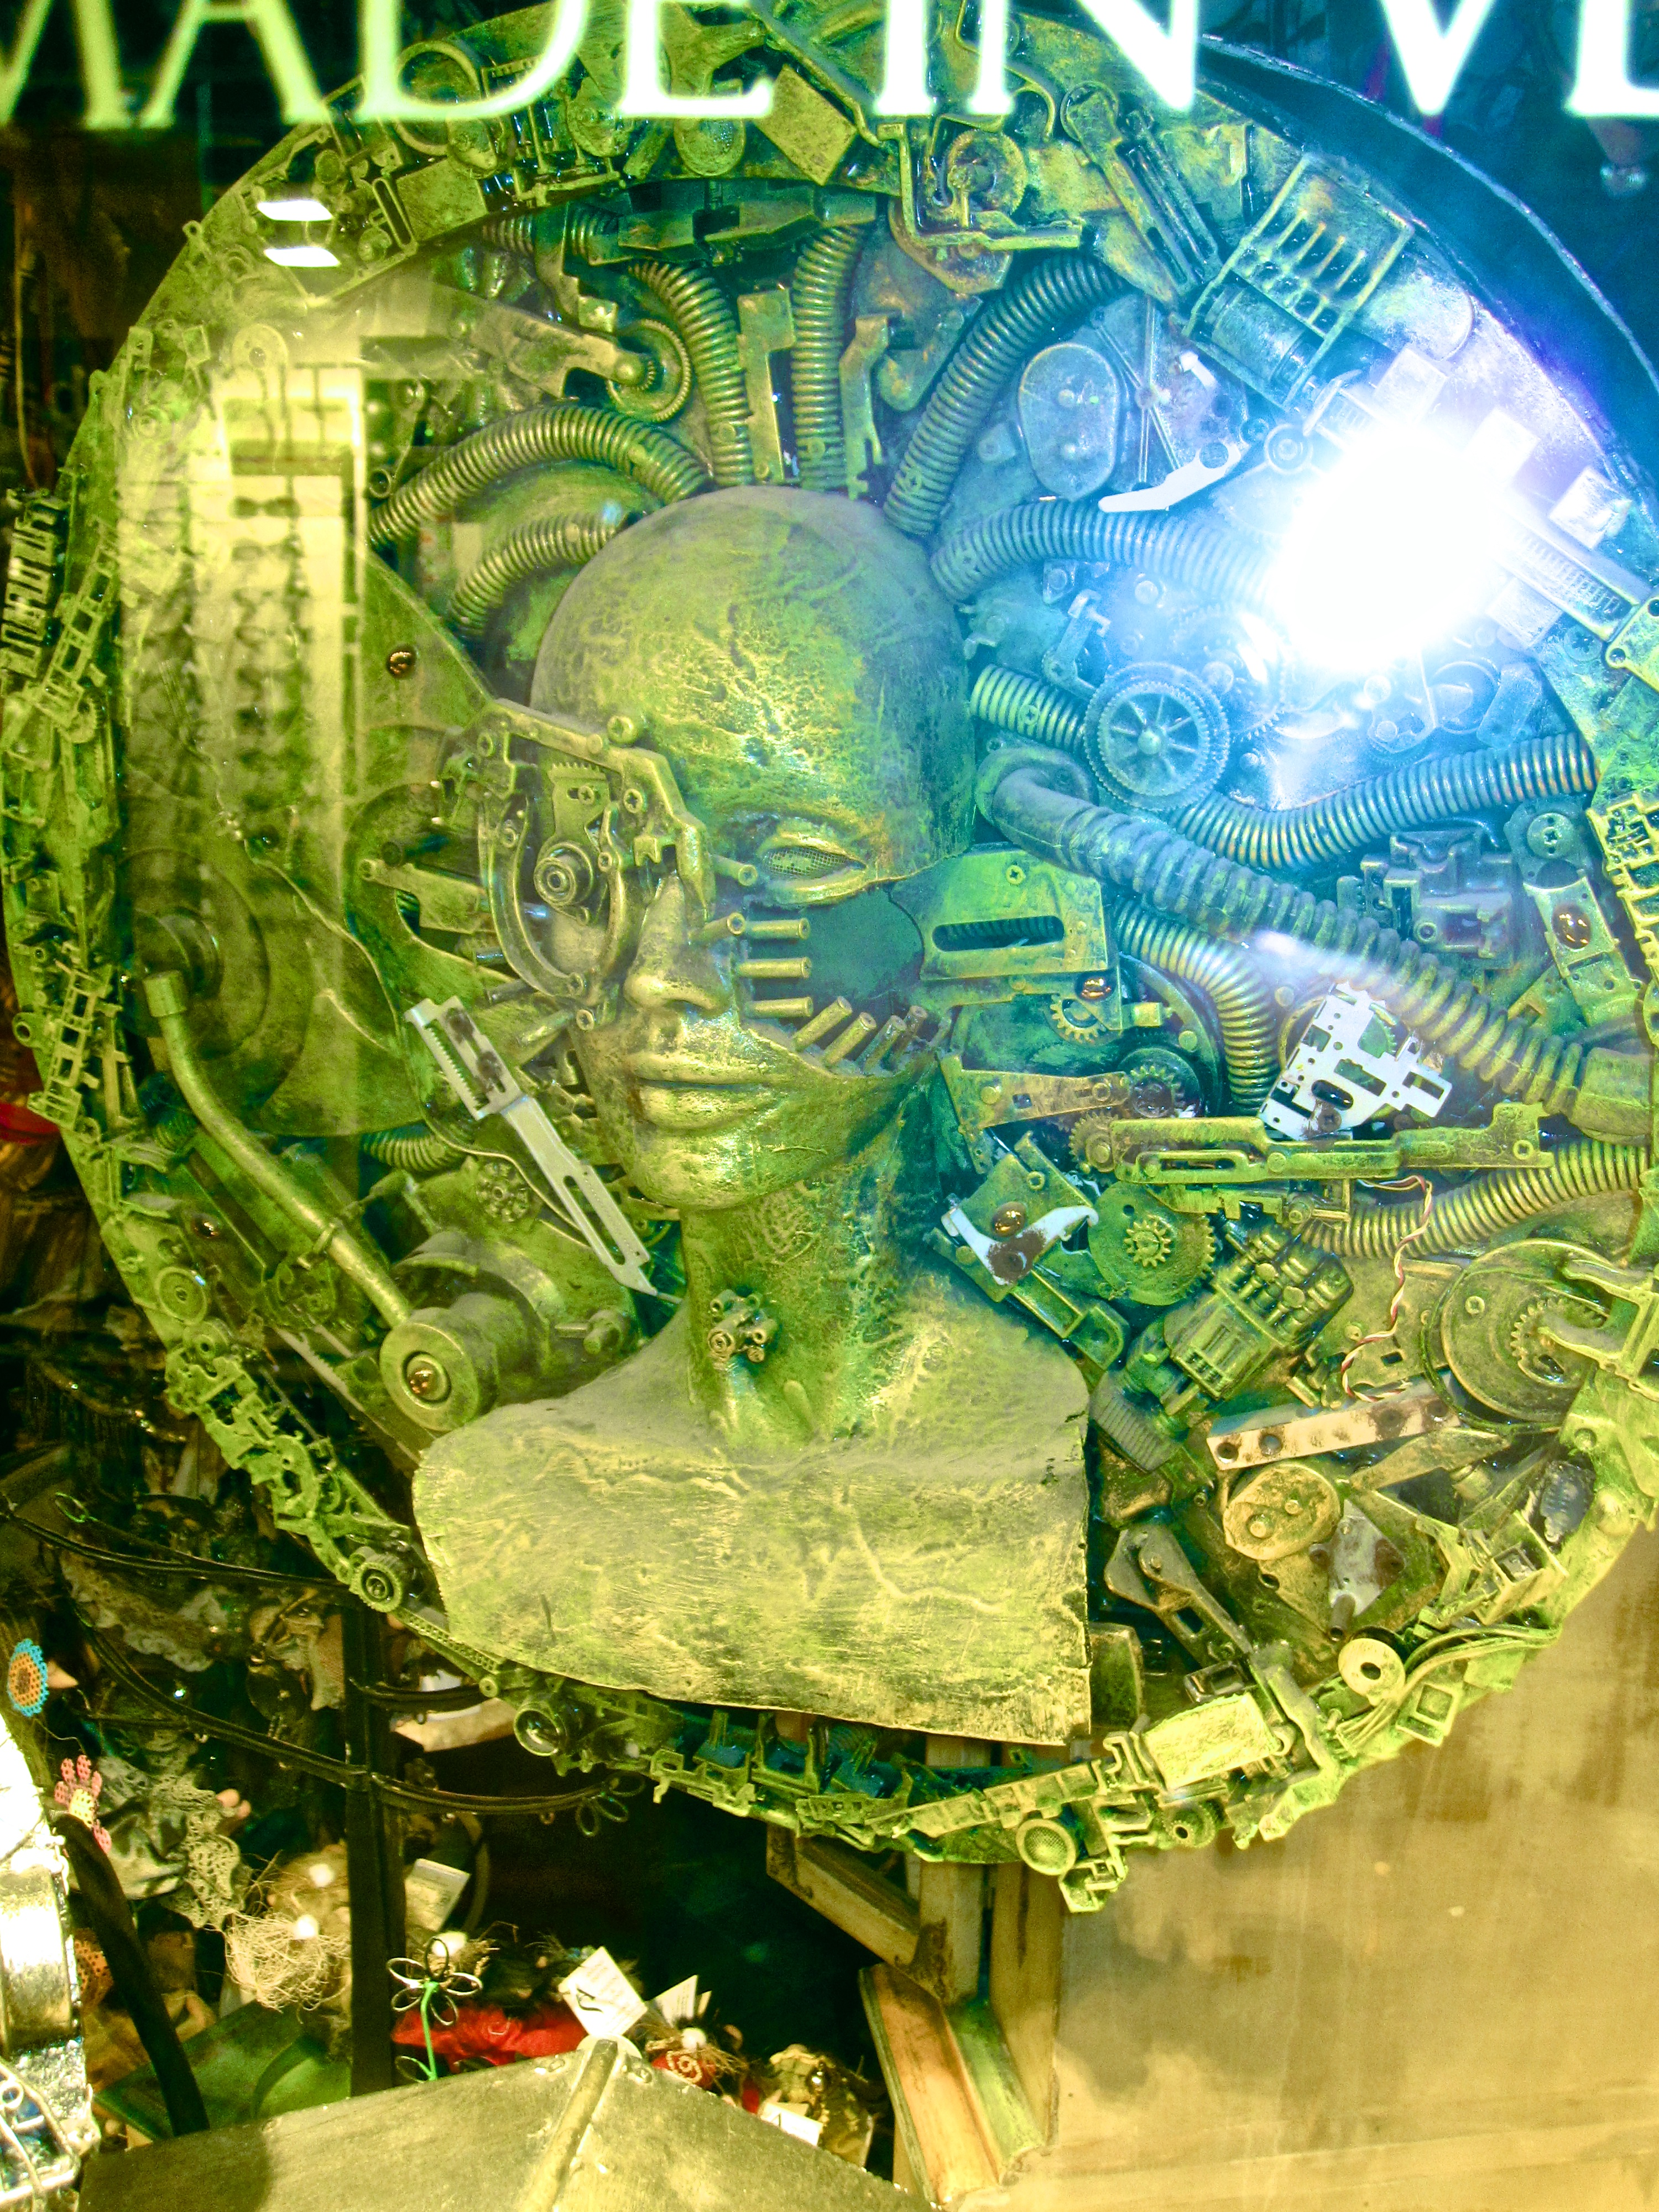 The Art and the Artifice of a Borg Culture